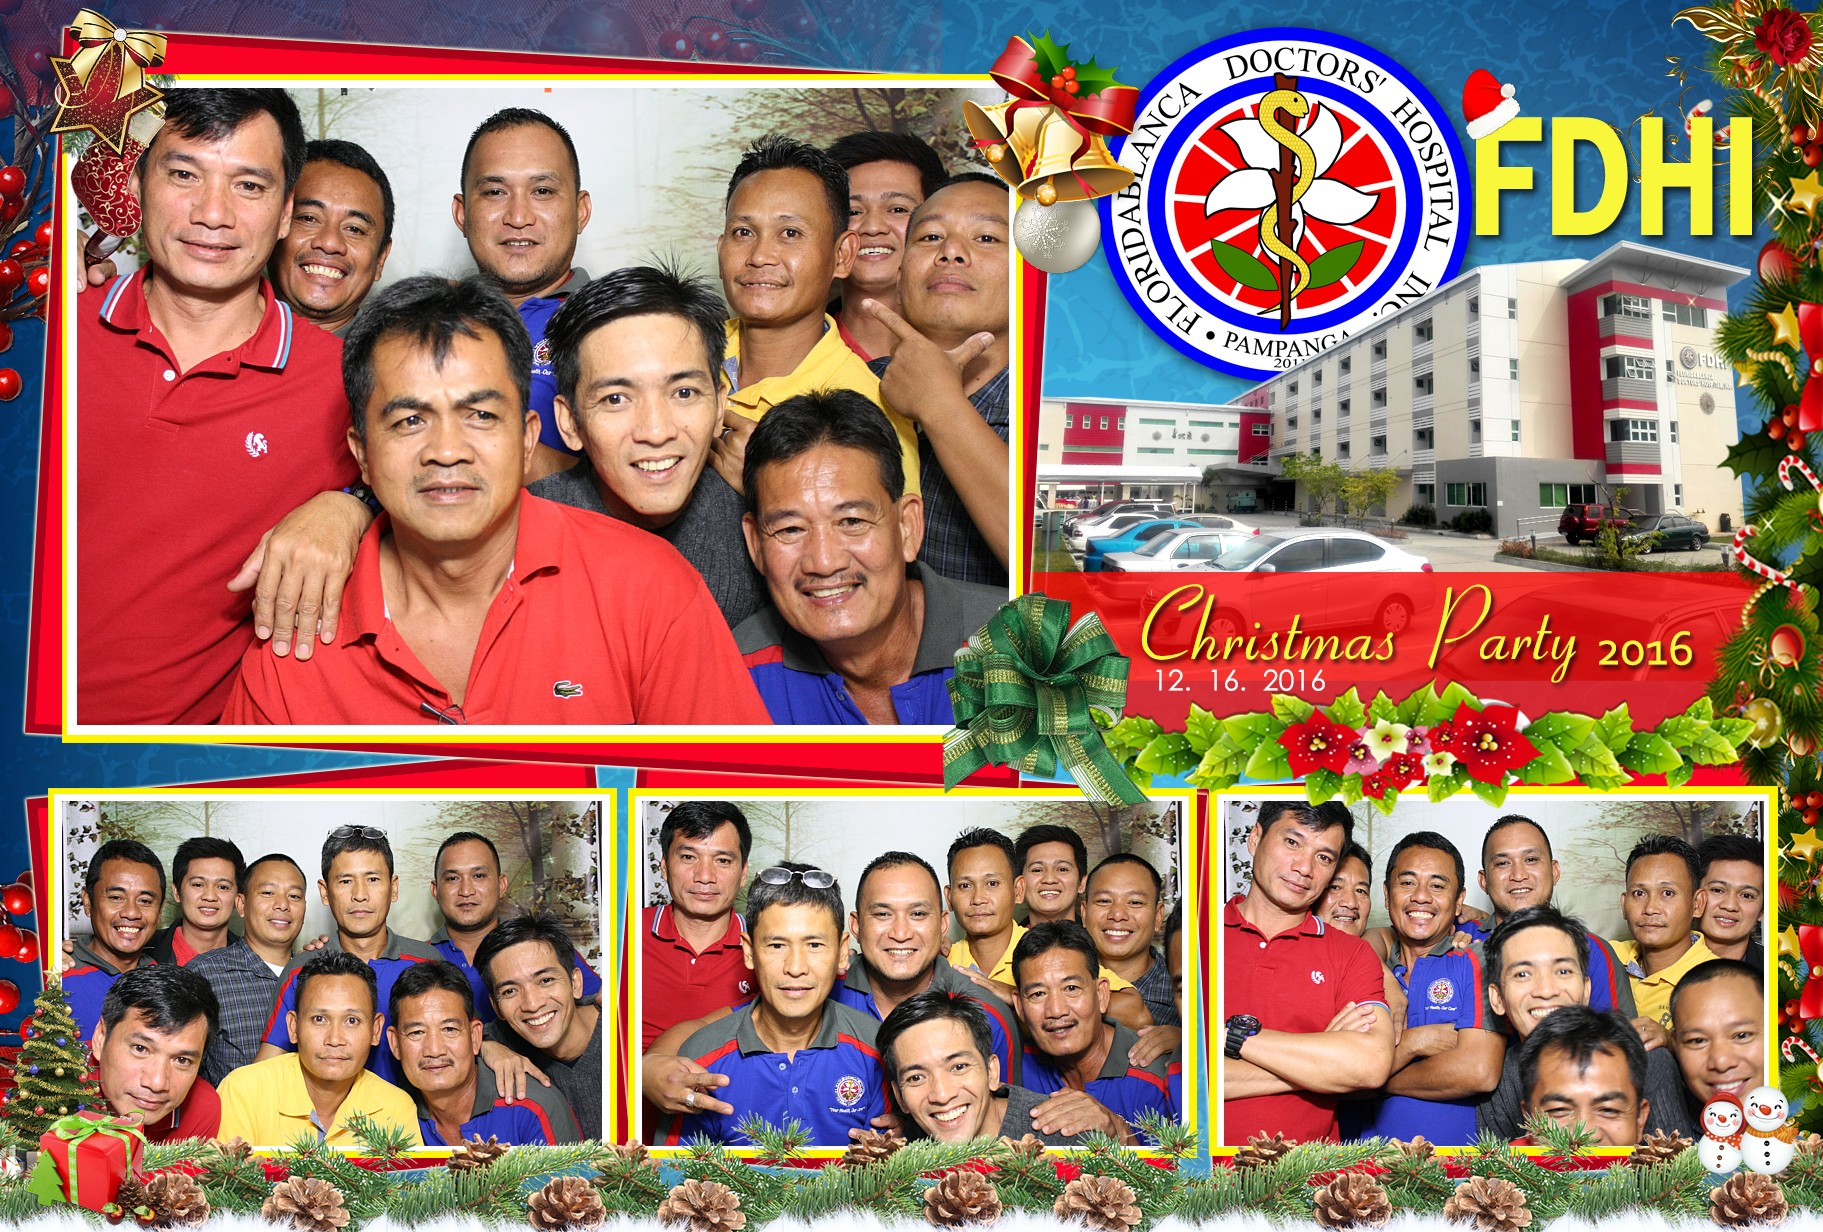 FDHI Christmas Party Photo Booth 2016